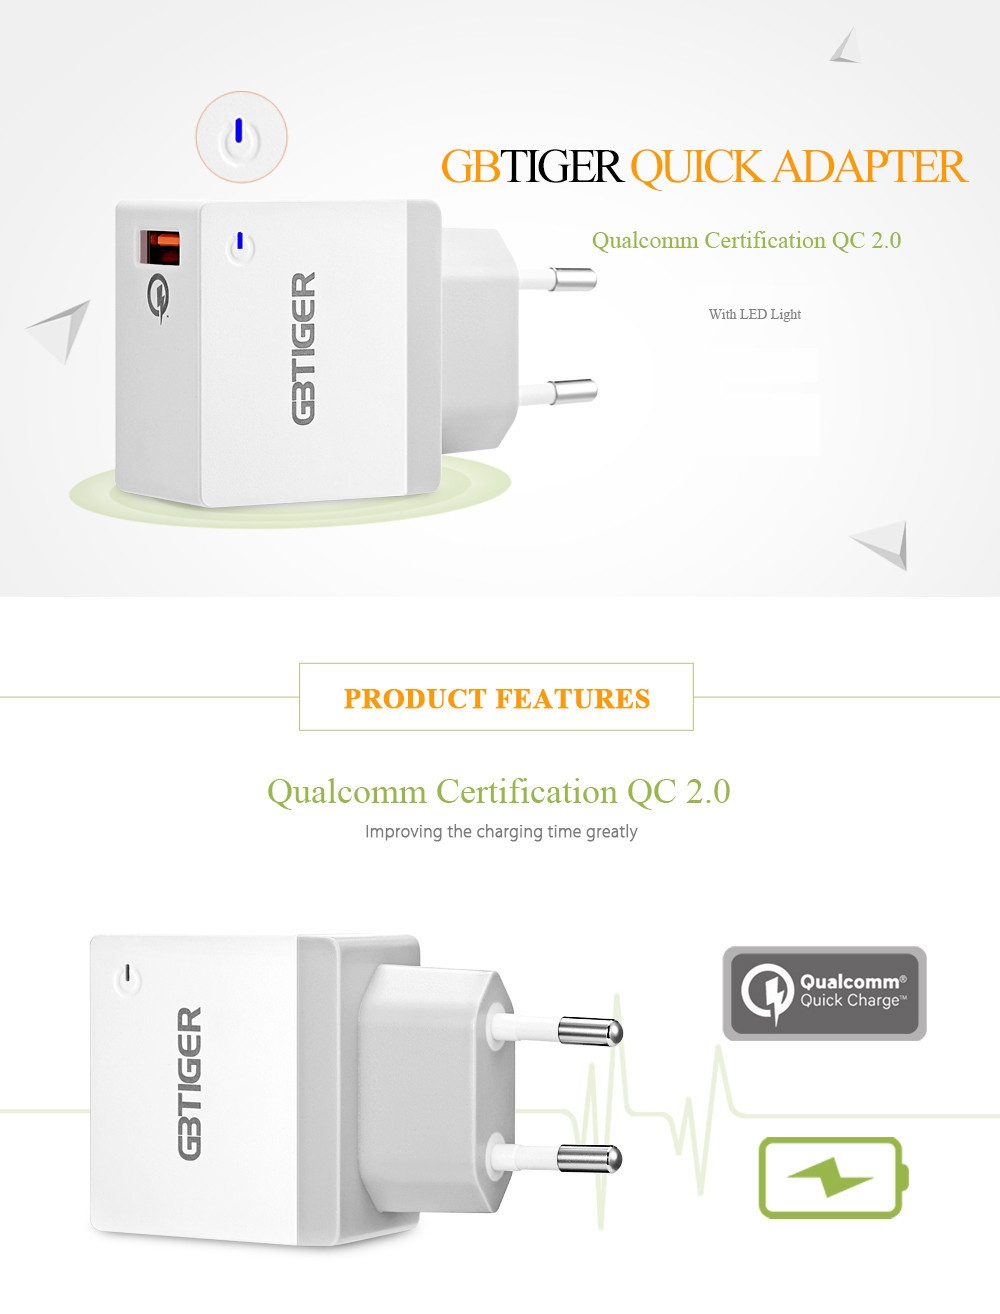 GBTIGER Qualcomm Certification QC 2.0 USB Multifunctional Quick Travel Adapter with LED Light